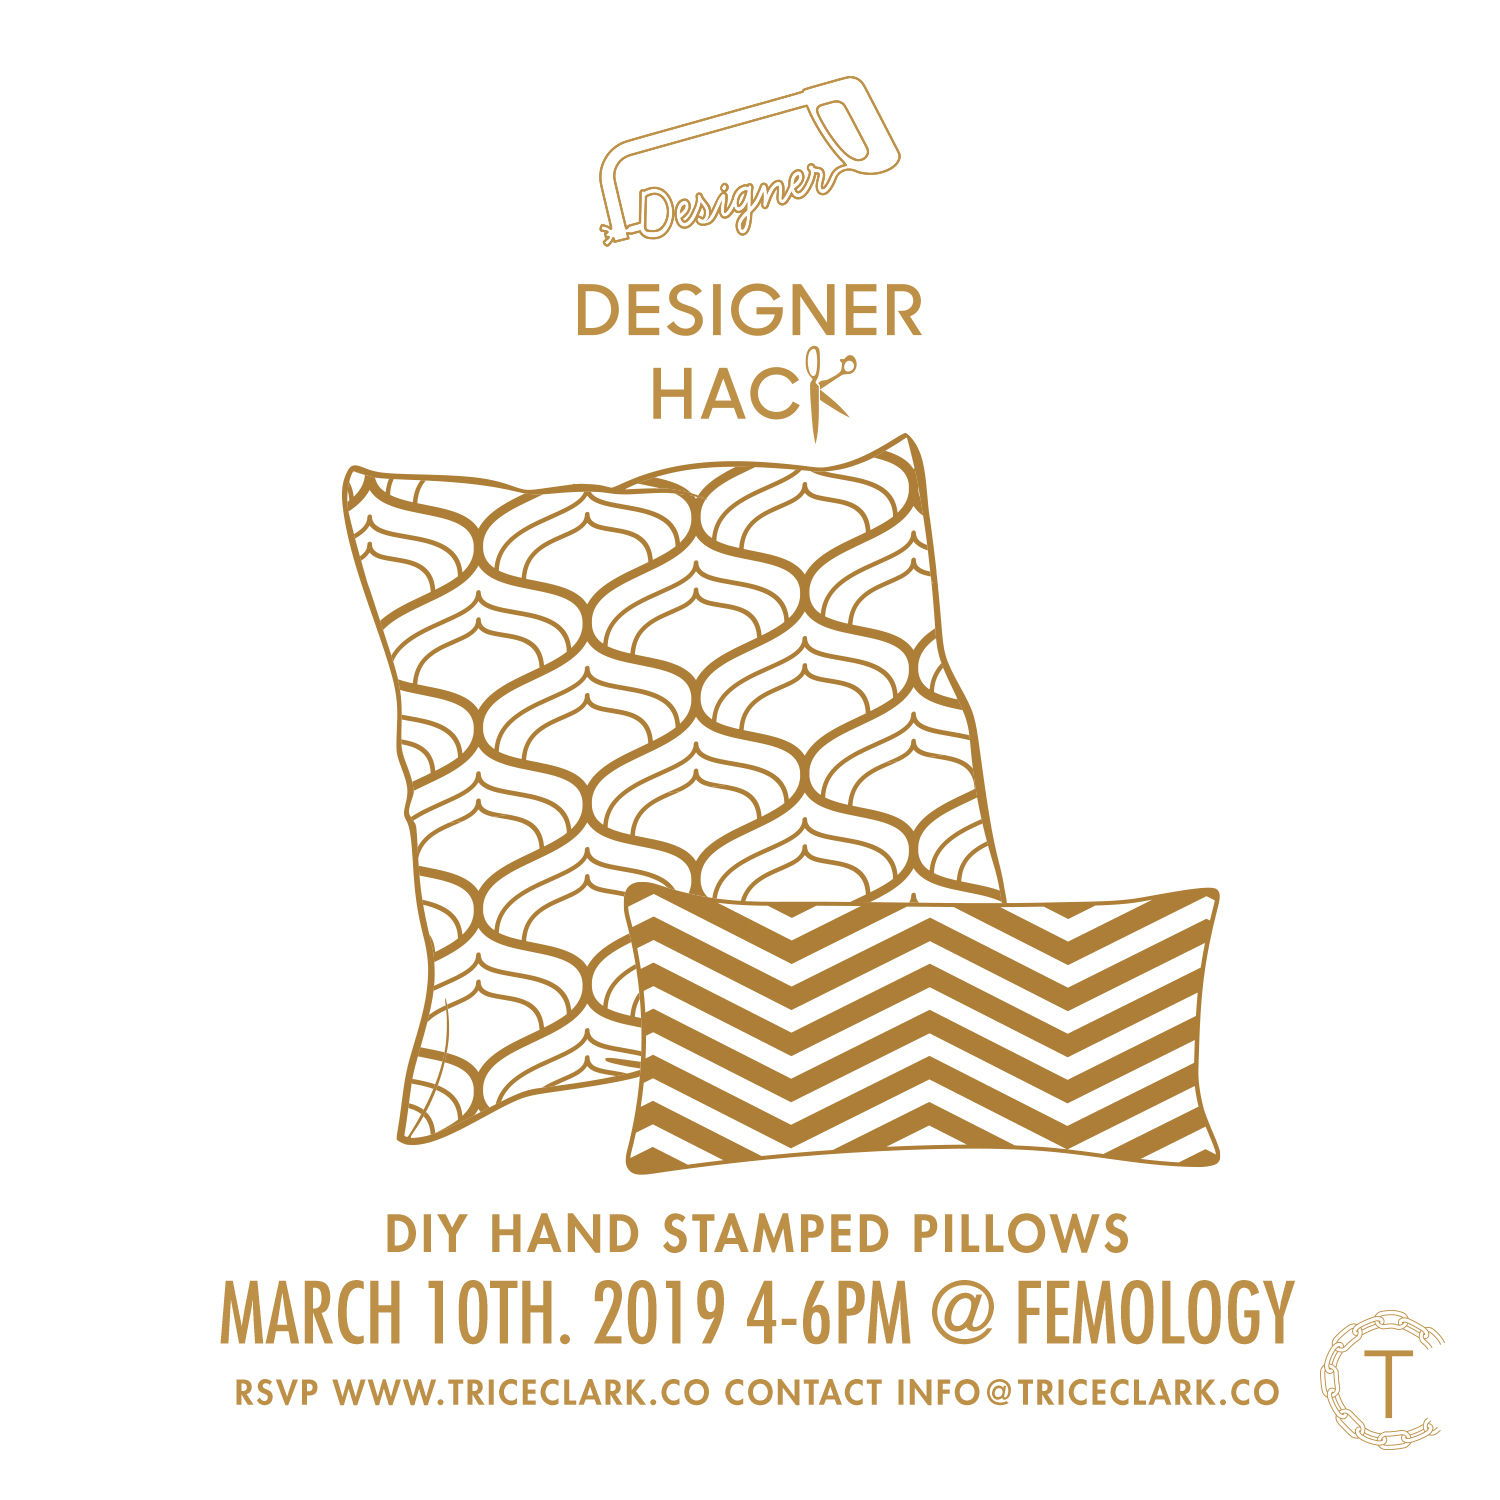 At the Designer Hack March 10th we will be making hand printed decorative pillows for your home. Come learn sewing basic sewing skills and stamping techniques.